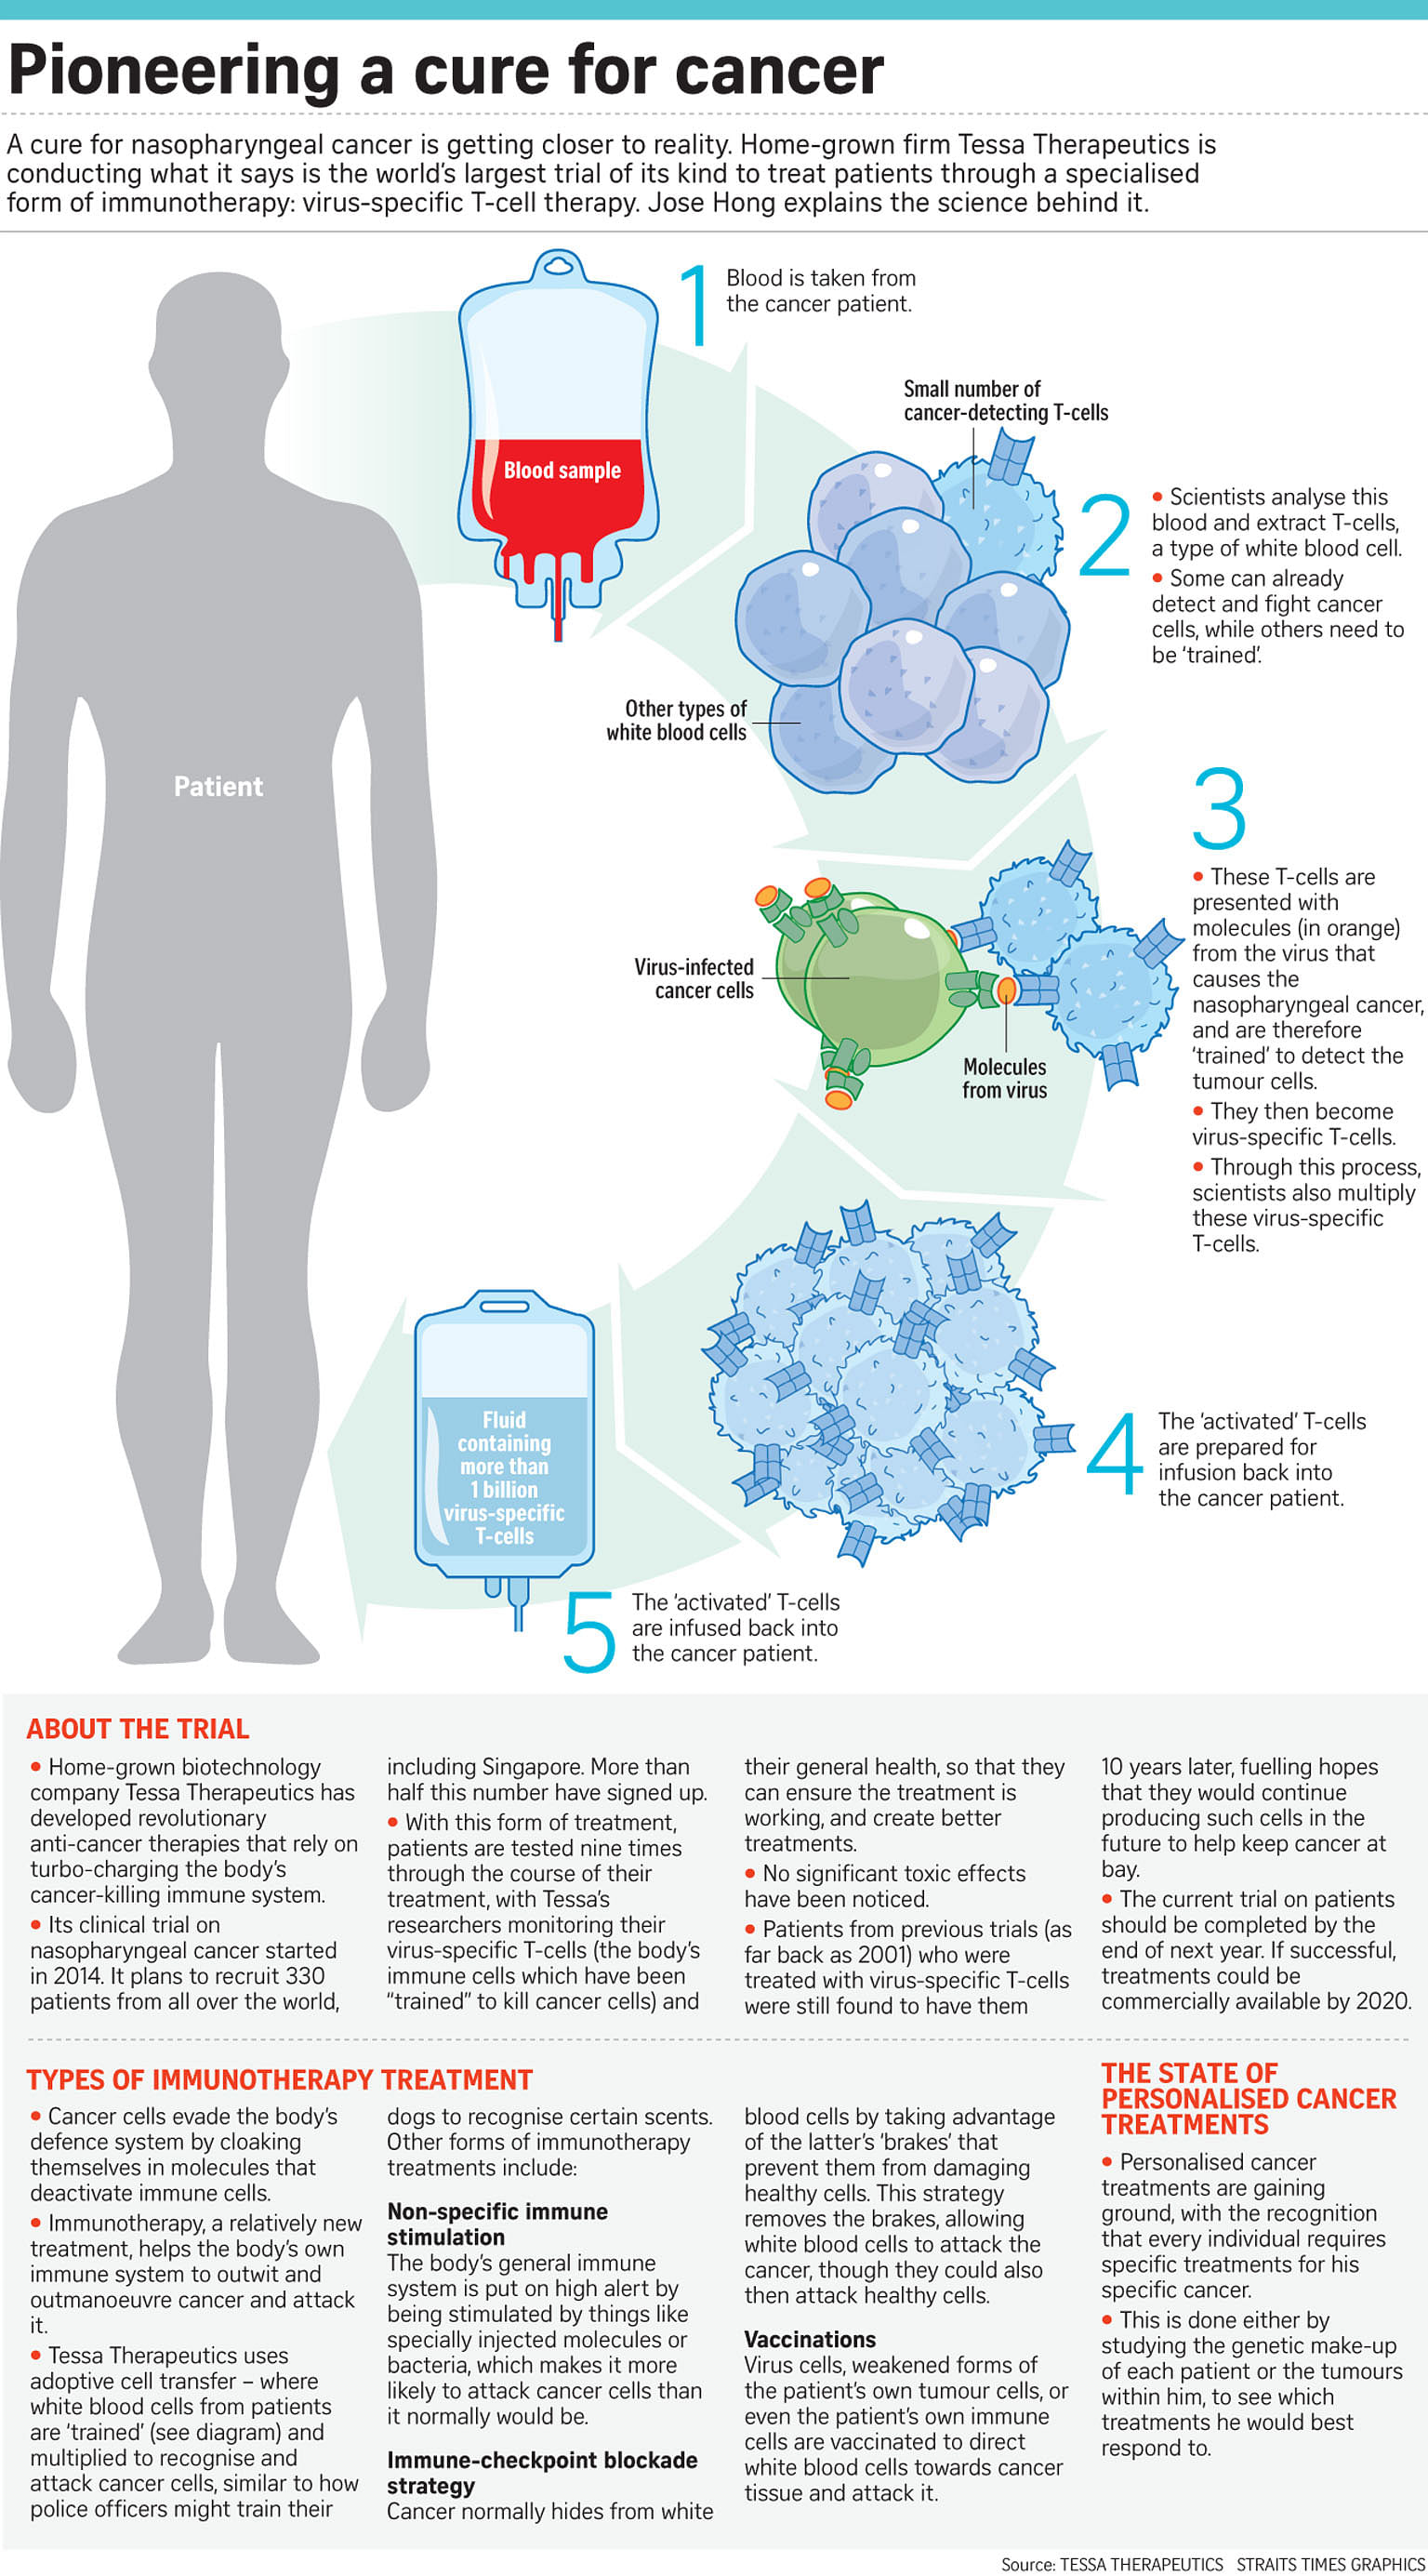 Pioneering a cure for cancer, Health News & Top Stories - The